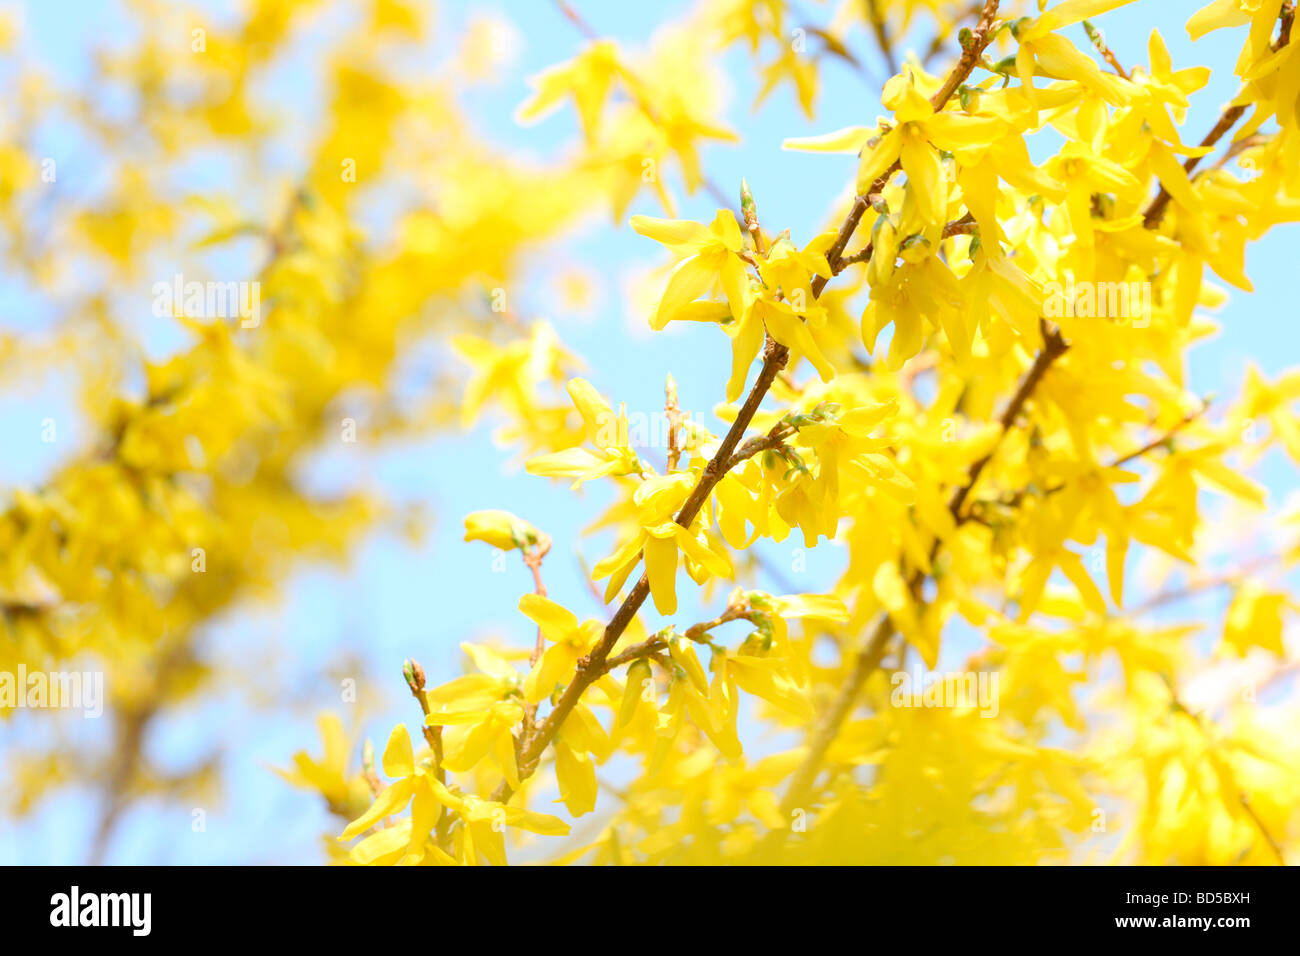 charming yellow forsythia stems in a contemporary style fine art photography Jane Ann Butler Photography JABP523 - Stock Image